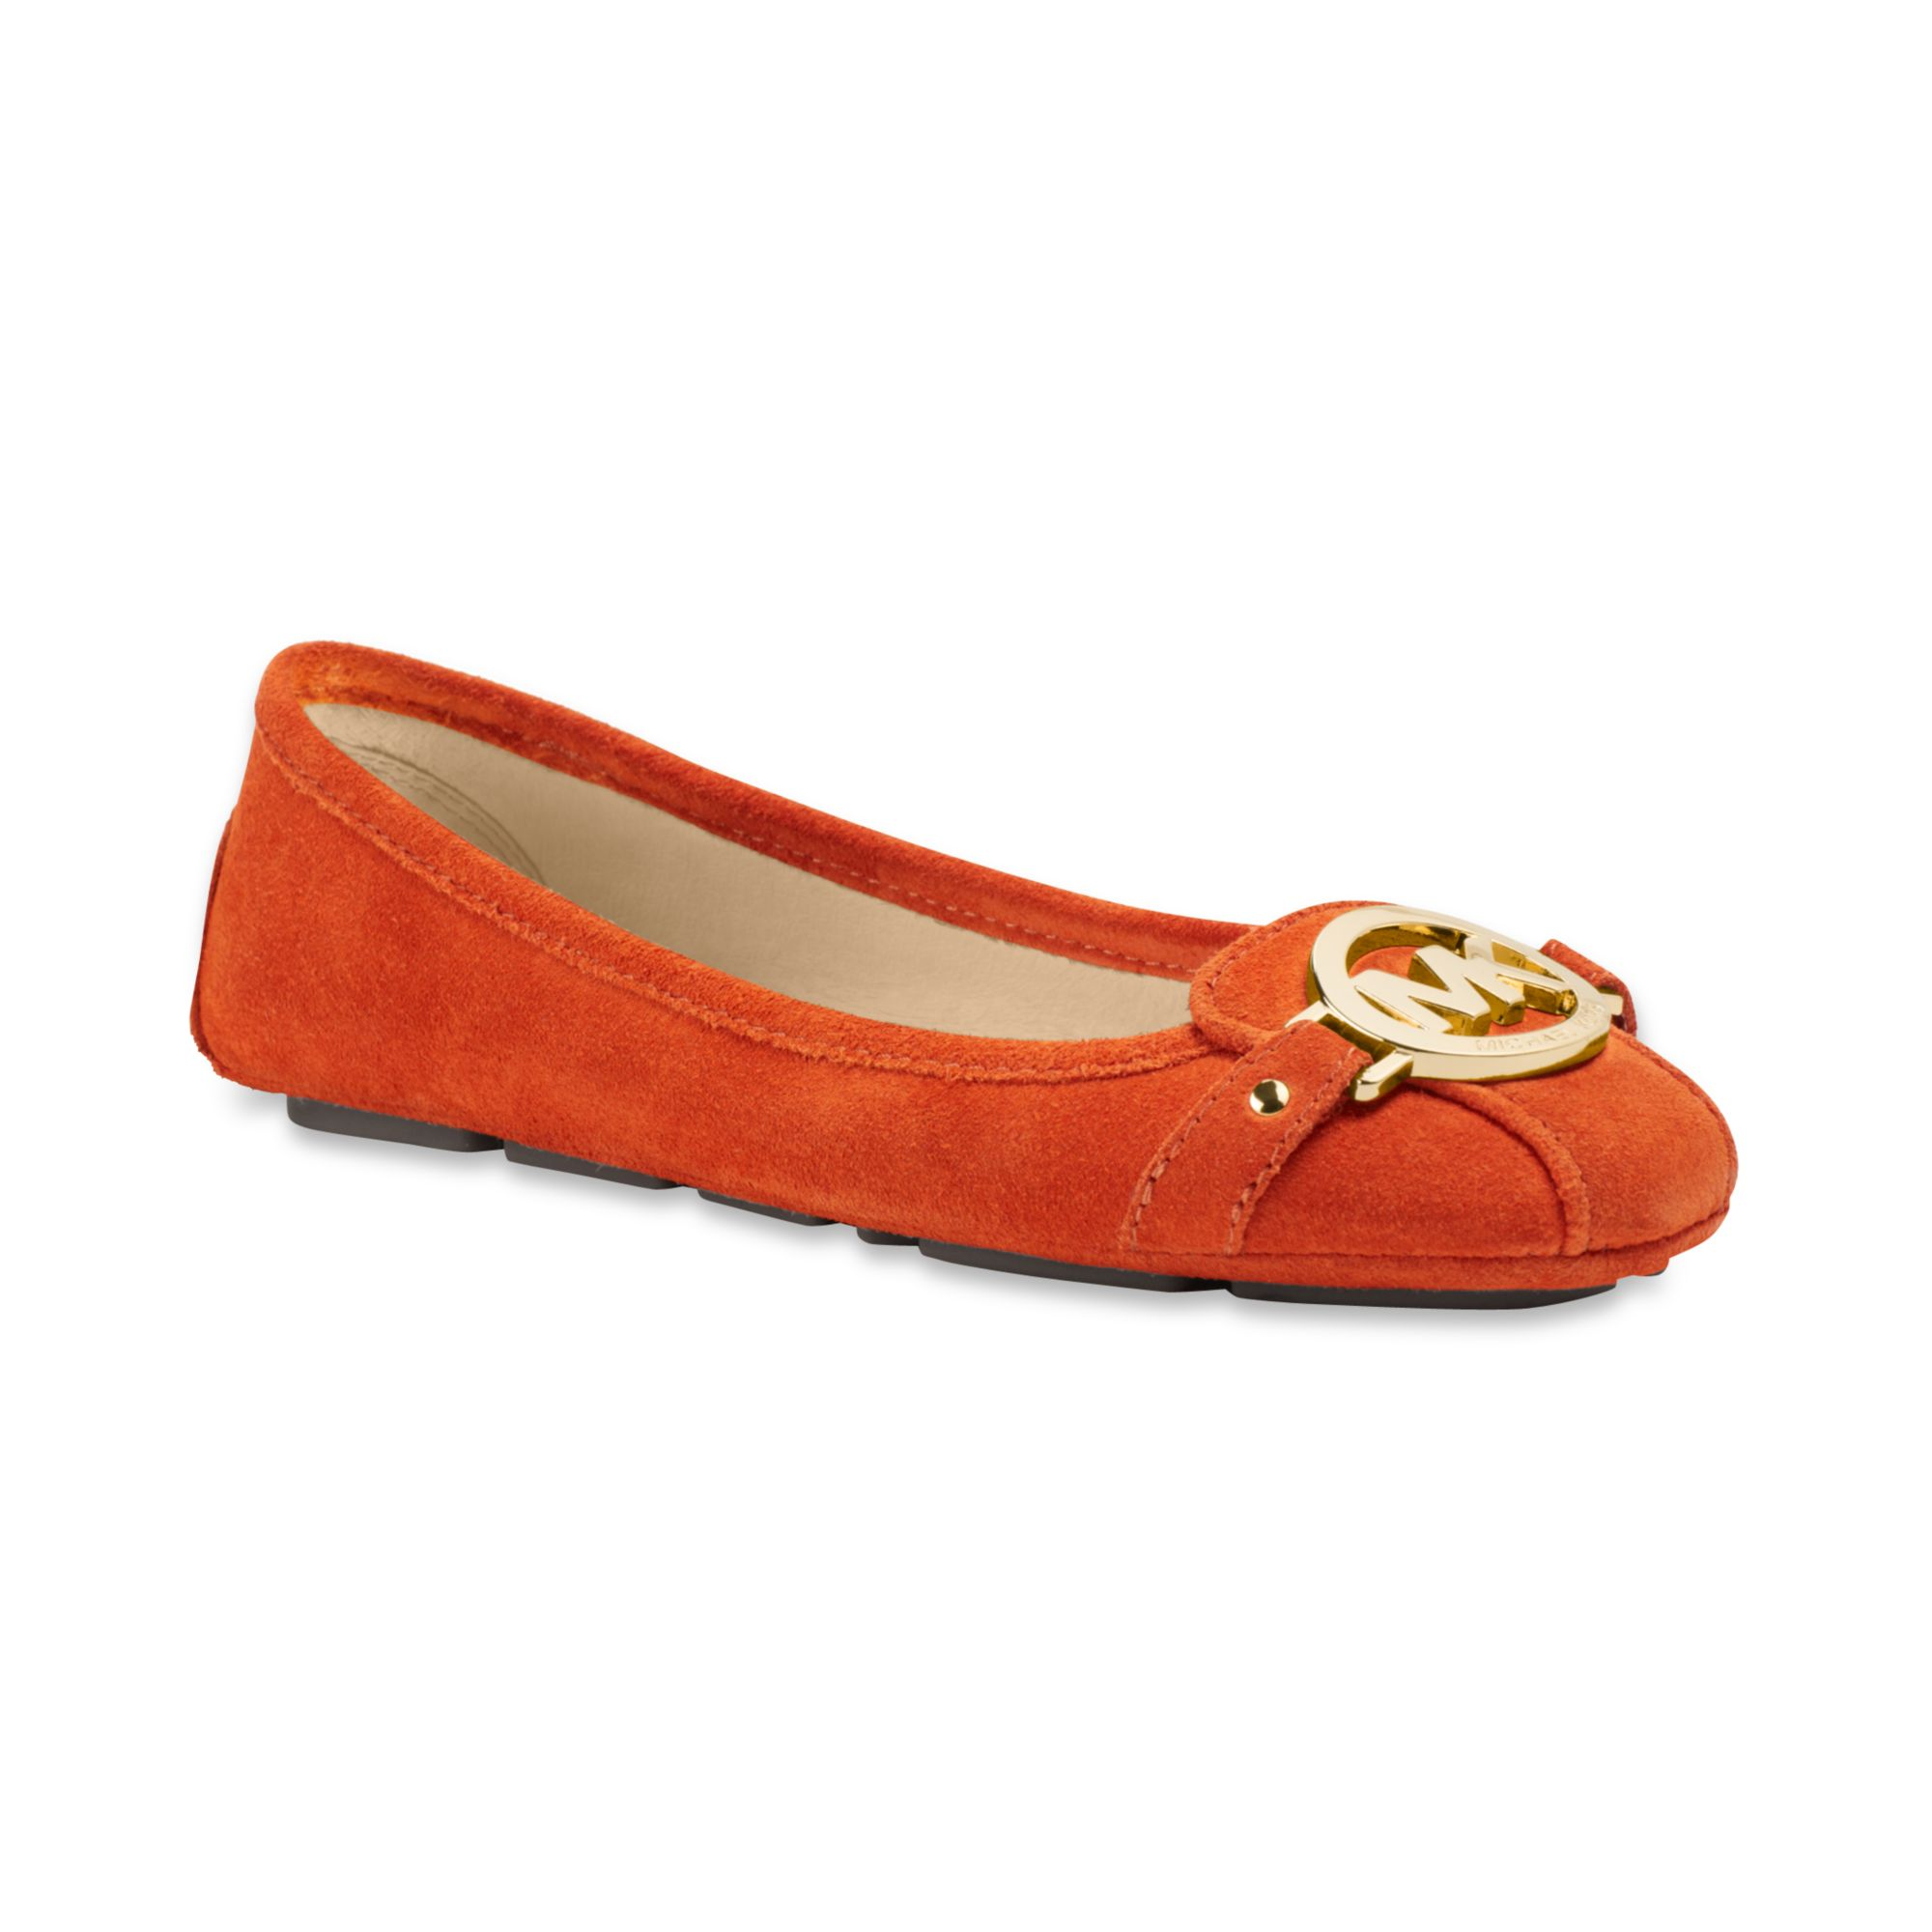 Michael Kors Shoes Fulton Moc Flats